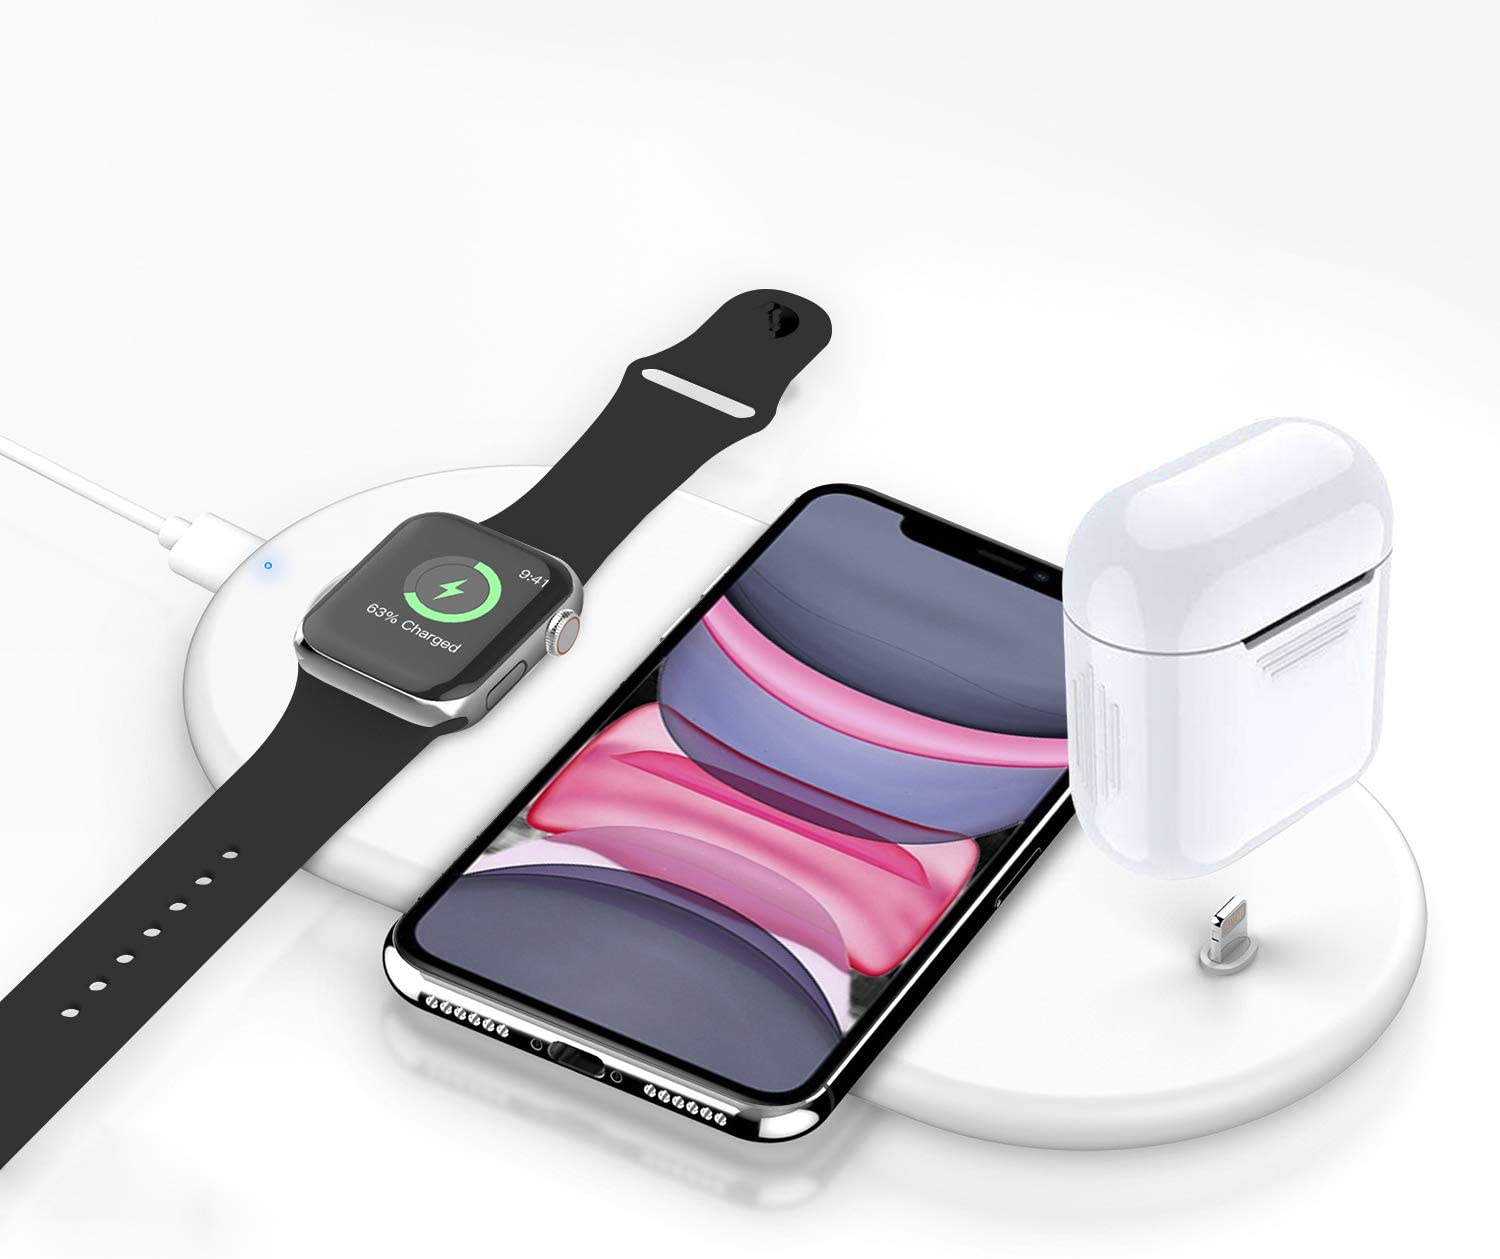 Kekodeepfun Wireless Charger, 3 in 1 Wireless Charging Stand Pad for Apple Watch iPhone Airpods, Wireless Charging Station for iPhone 11/Pro/X/XR/Xs/8 Plus Apple Watch Charger 5 4 3 2 1 Airpods12 Pro